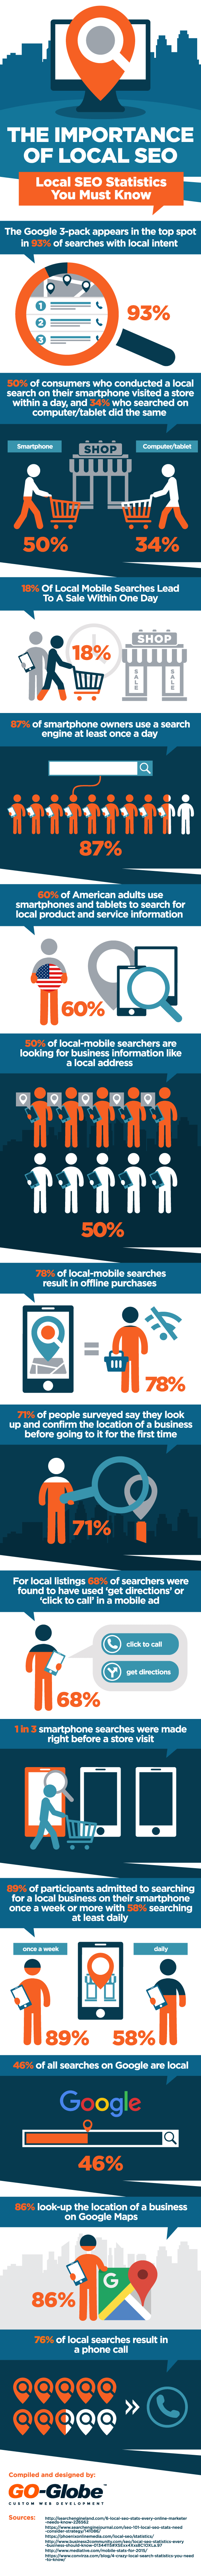 the-importance-of-local-seo_574575def3788